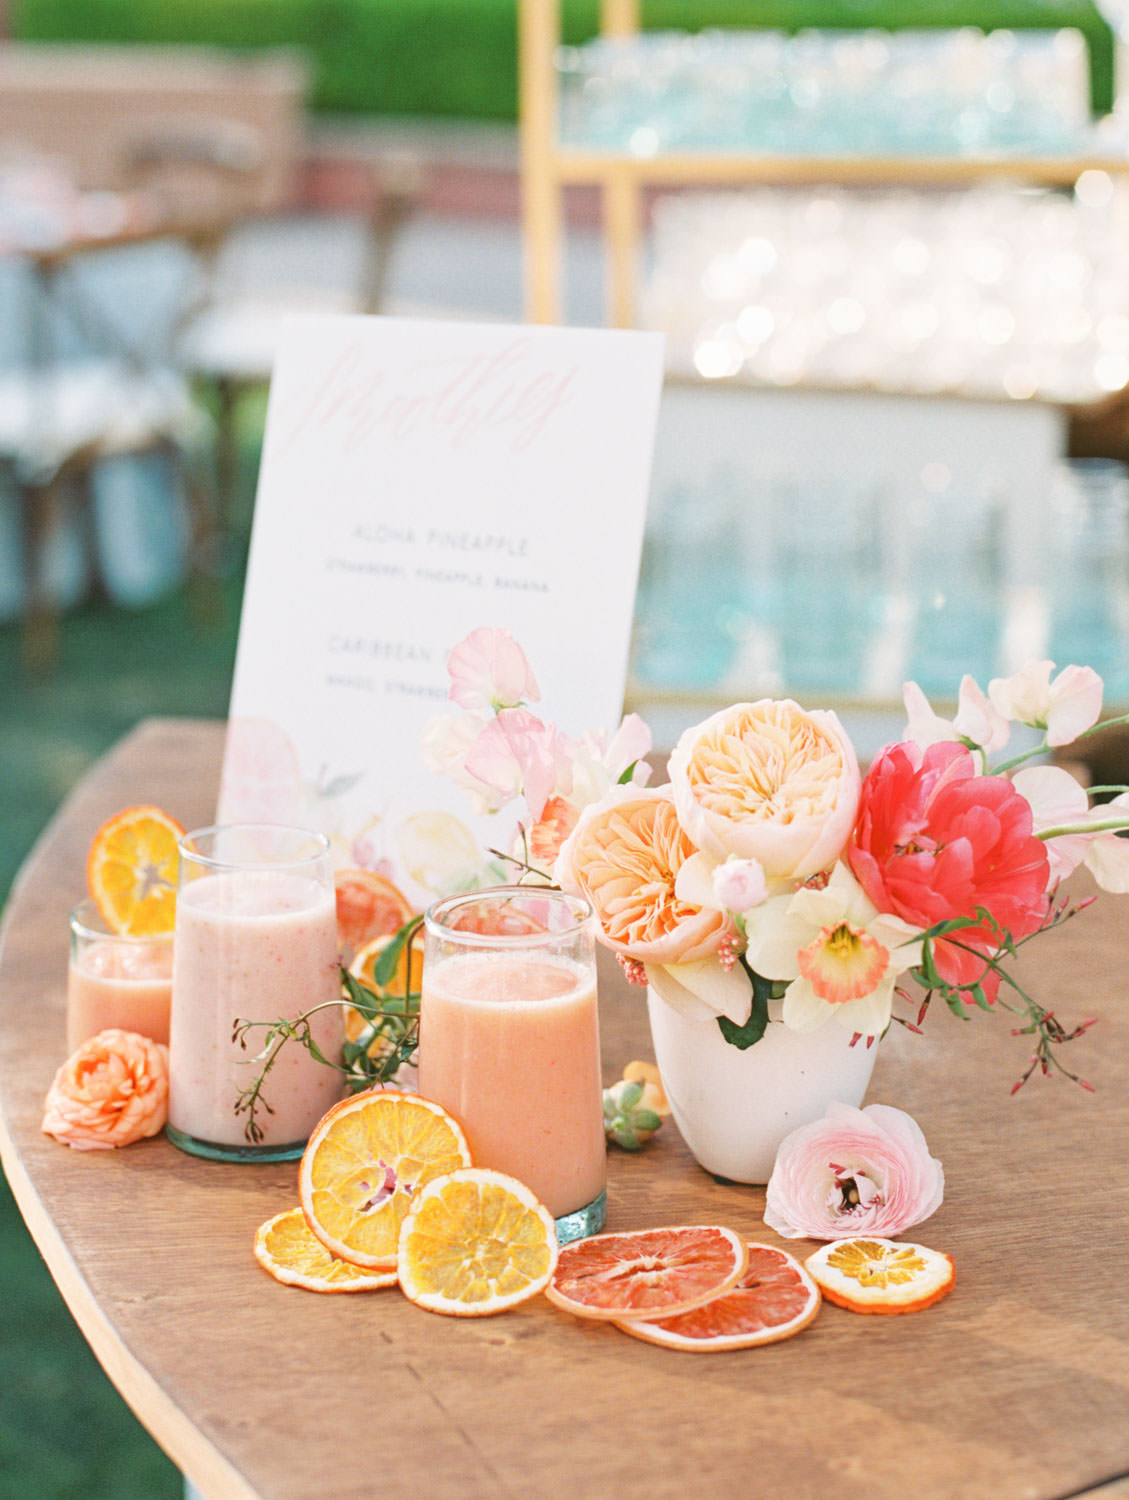 Smoothie bar from Jamba Juice for a wedding. Smoothies styled with dried fruit and flowers of peonies, roses, and sweet peas in pink, orange, peach, and fuschia. A Wedding Photographer's Fairmont Grand Del Mar Wedding